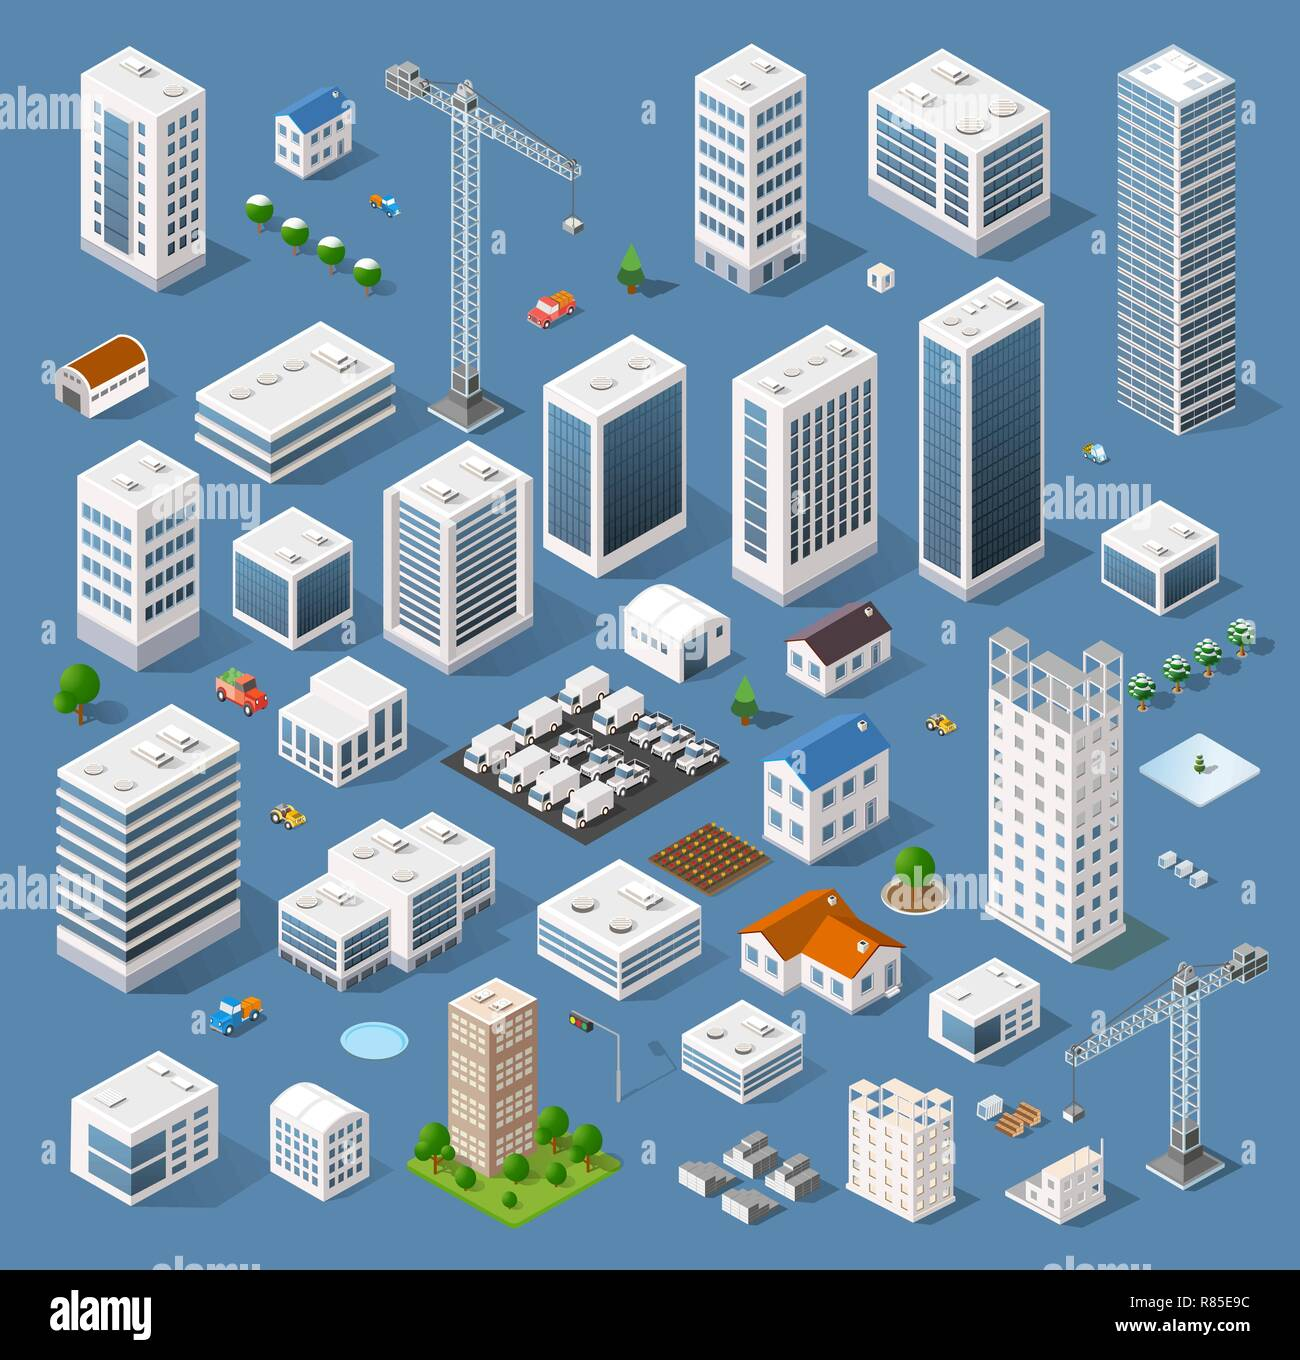 Industrial based on isometric projection of a three-dimensional houses, buildings, cranes, cars and many other design elements necessary creative desi - Stock Vector